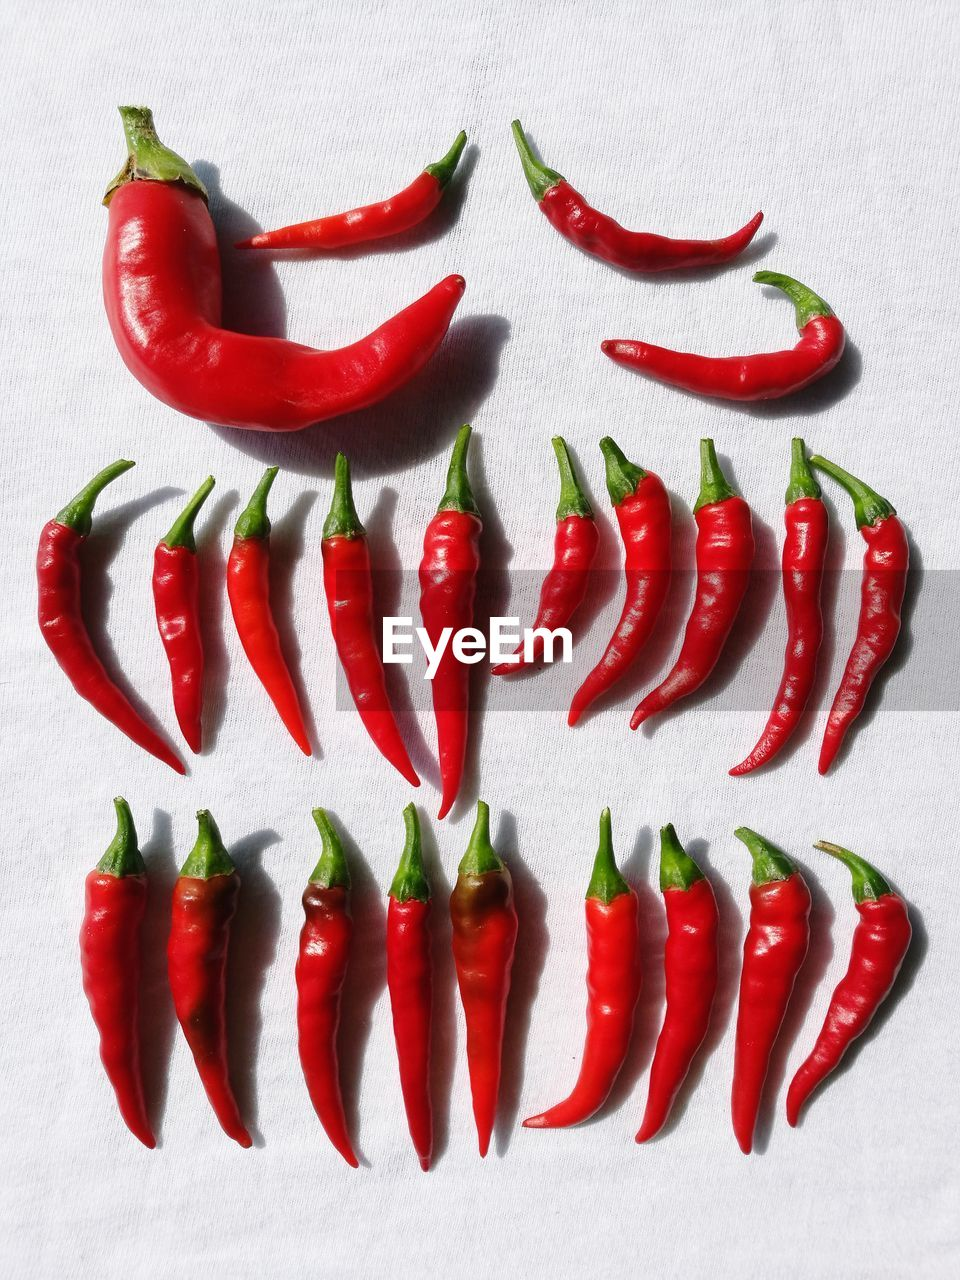 High angle view of red chili peppers arranged on table